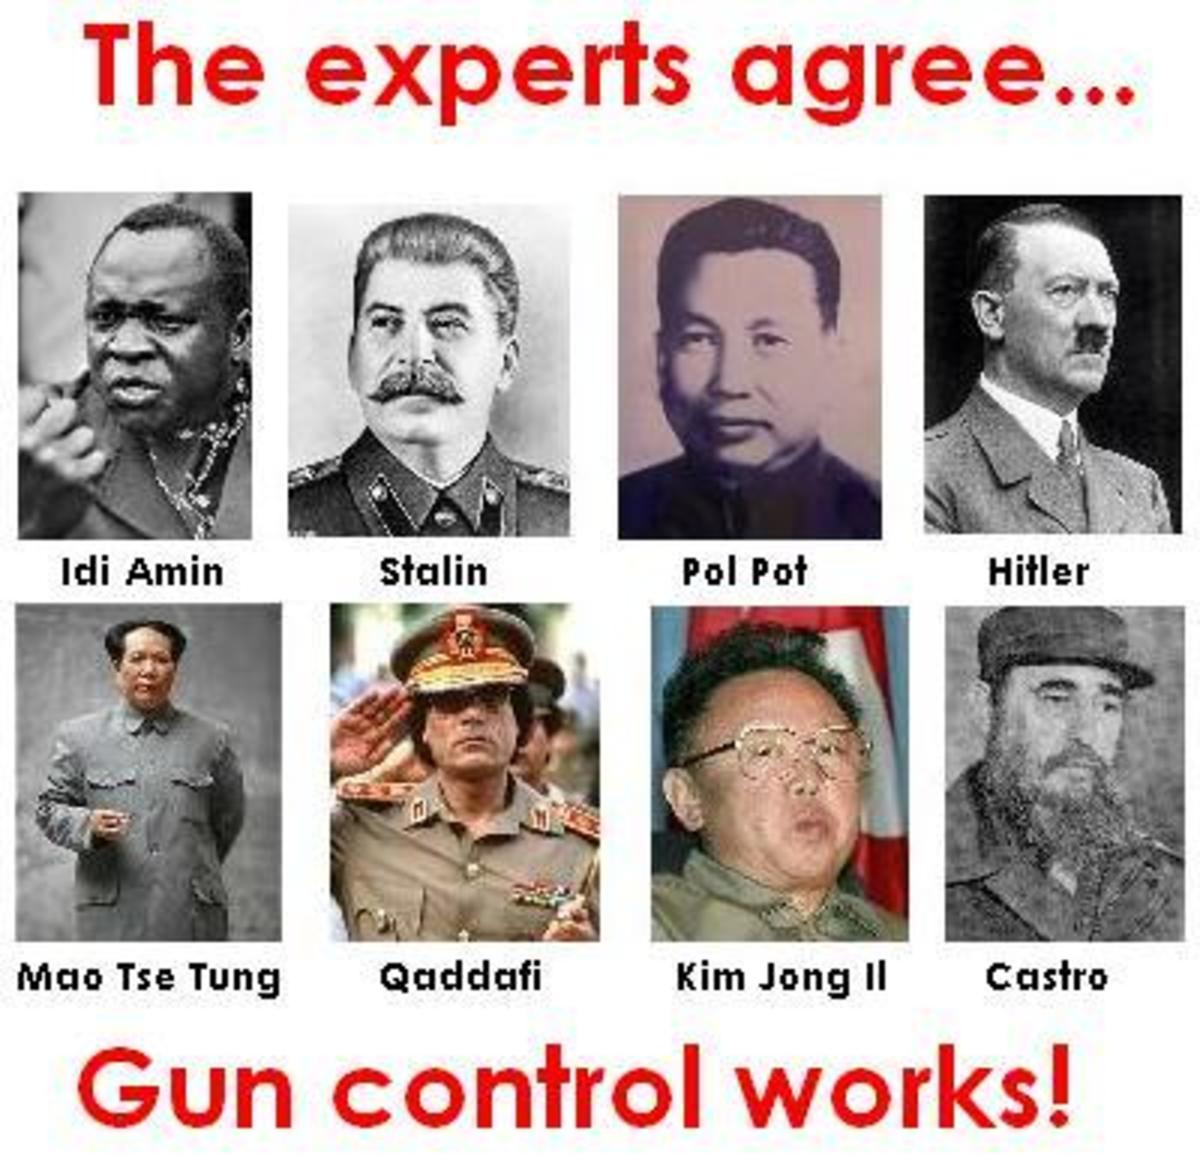 GUN CONTROL TOP ISSUE FOR ALL PROGRESSIVES